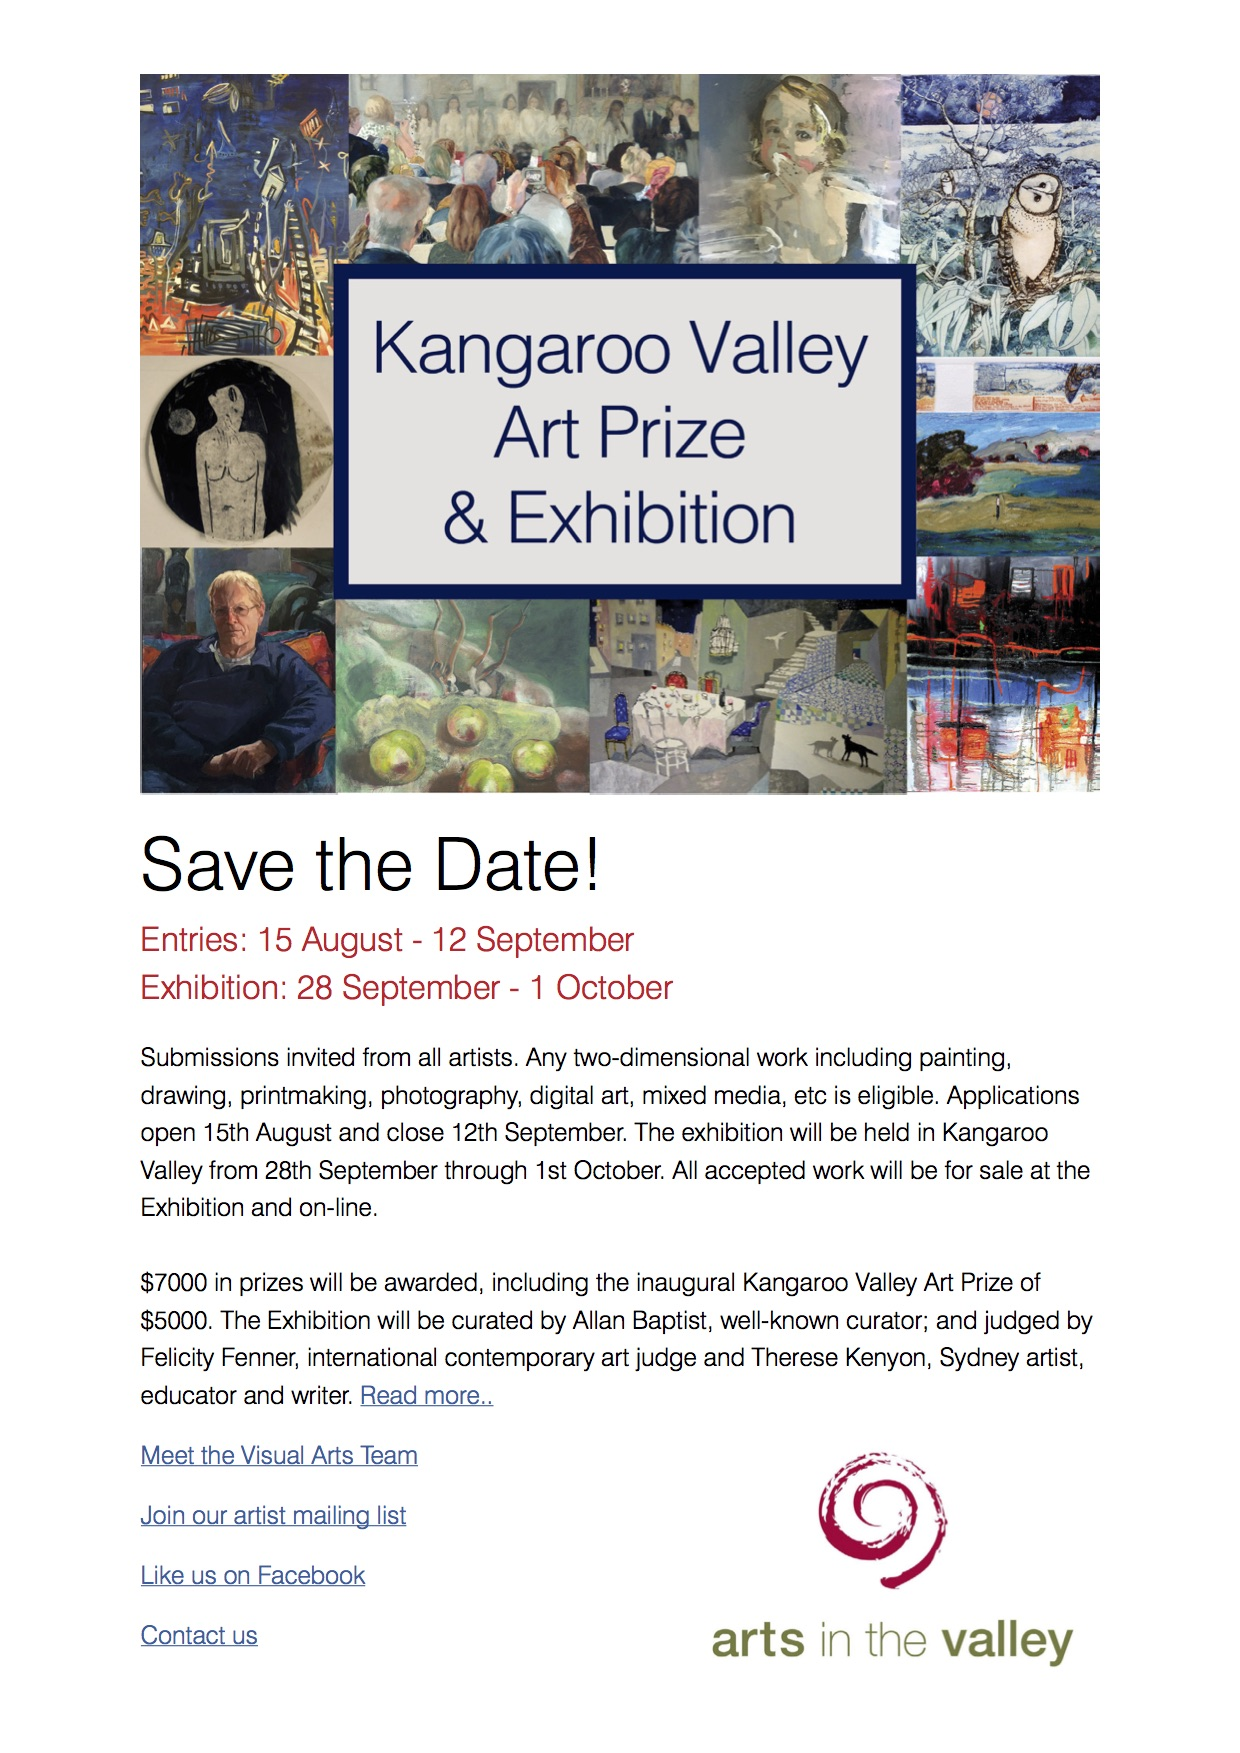 Kangaroo Valley $5000 Art Prize & 2018 Exhibition